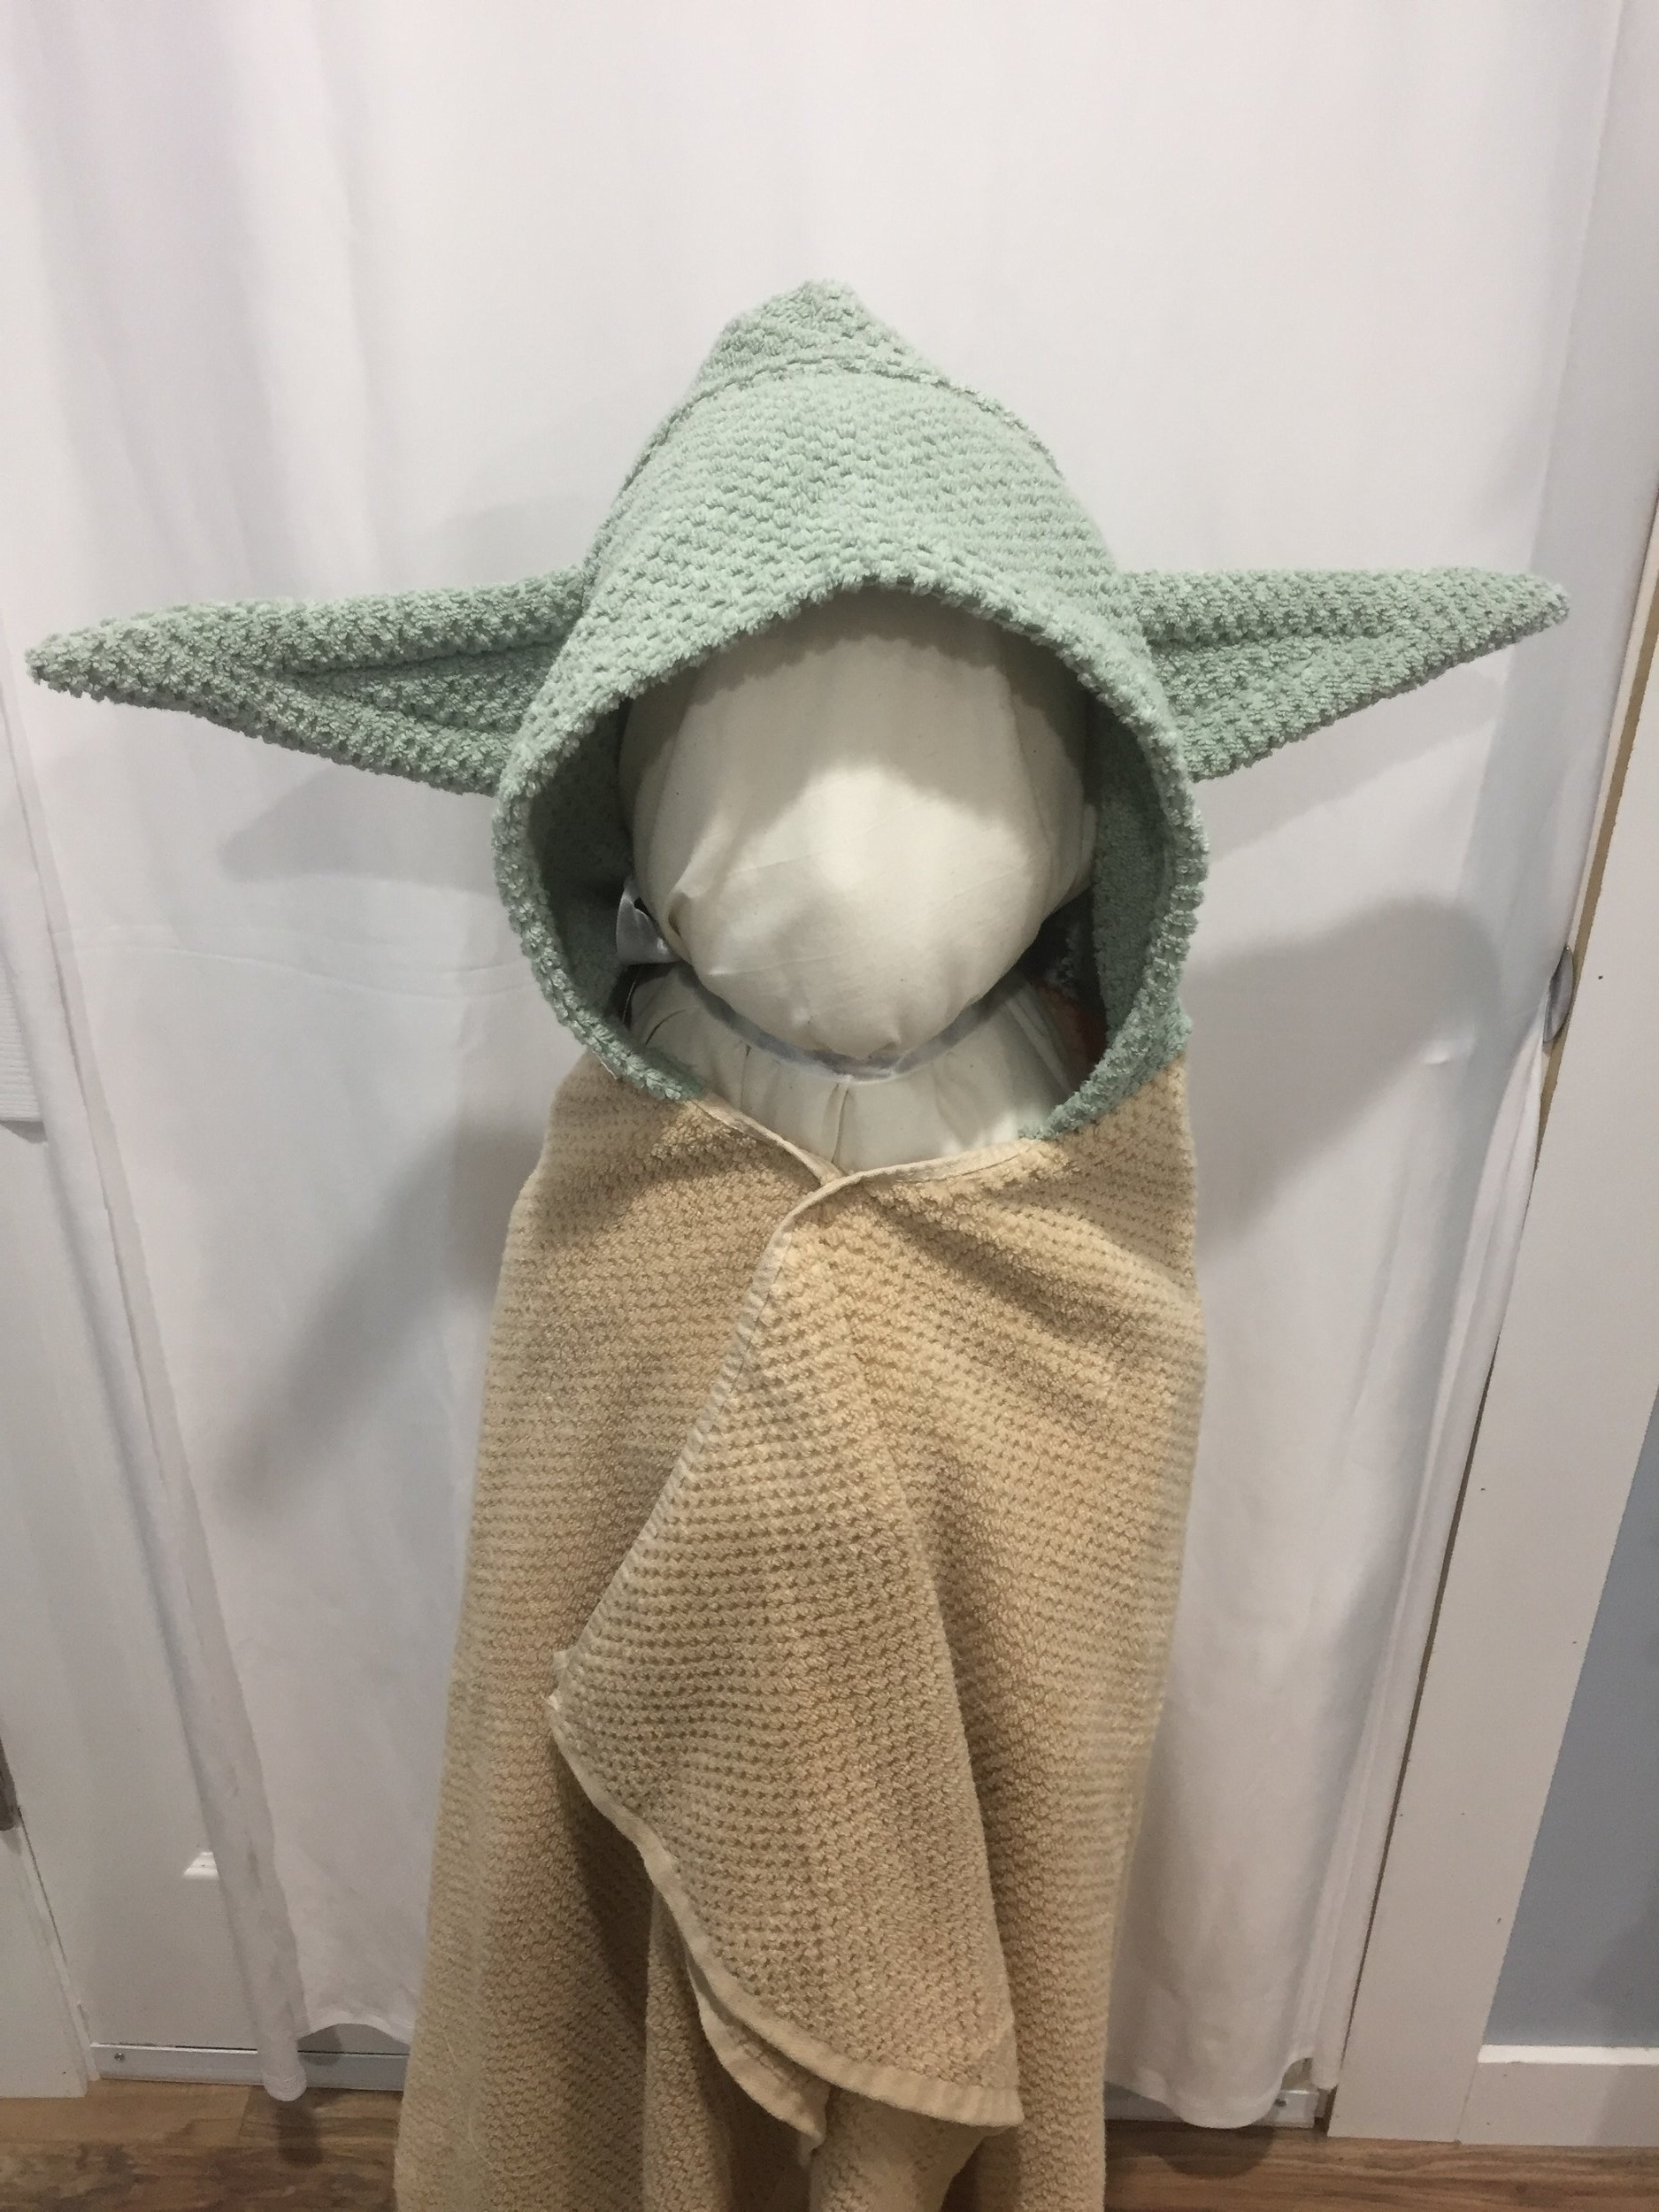 Bath Time - We offer fun hooded towels to make bath time an adventure. Check out our styles and characters at the Product link below.